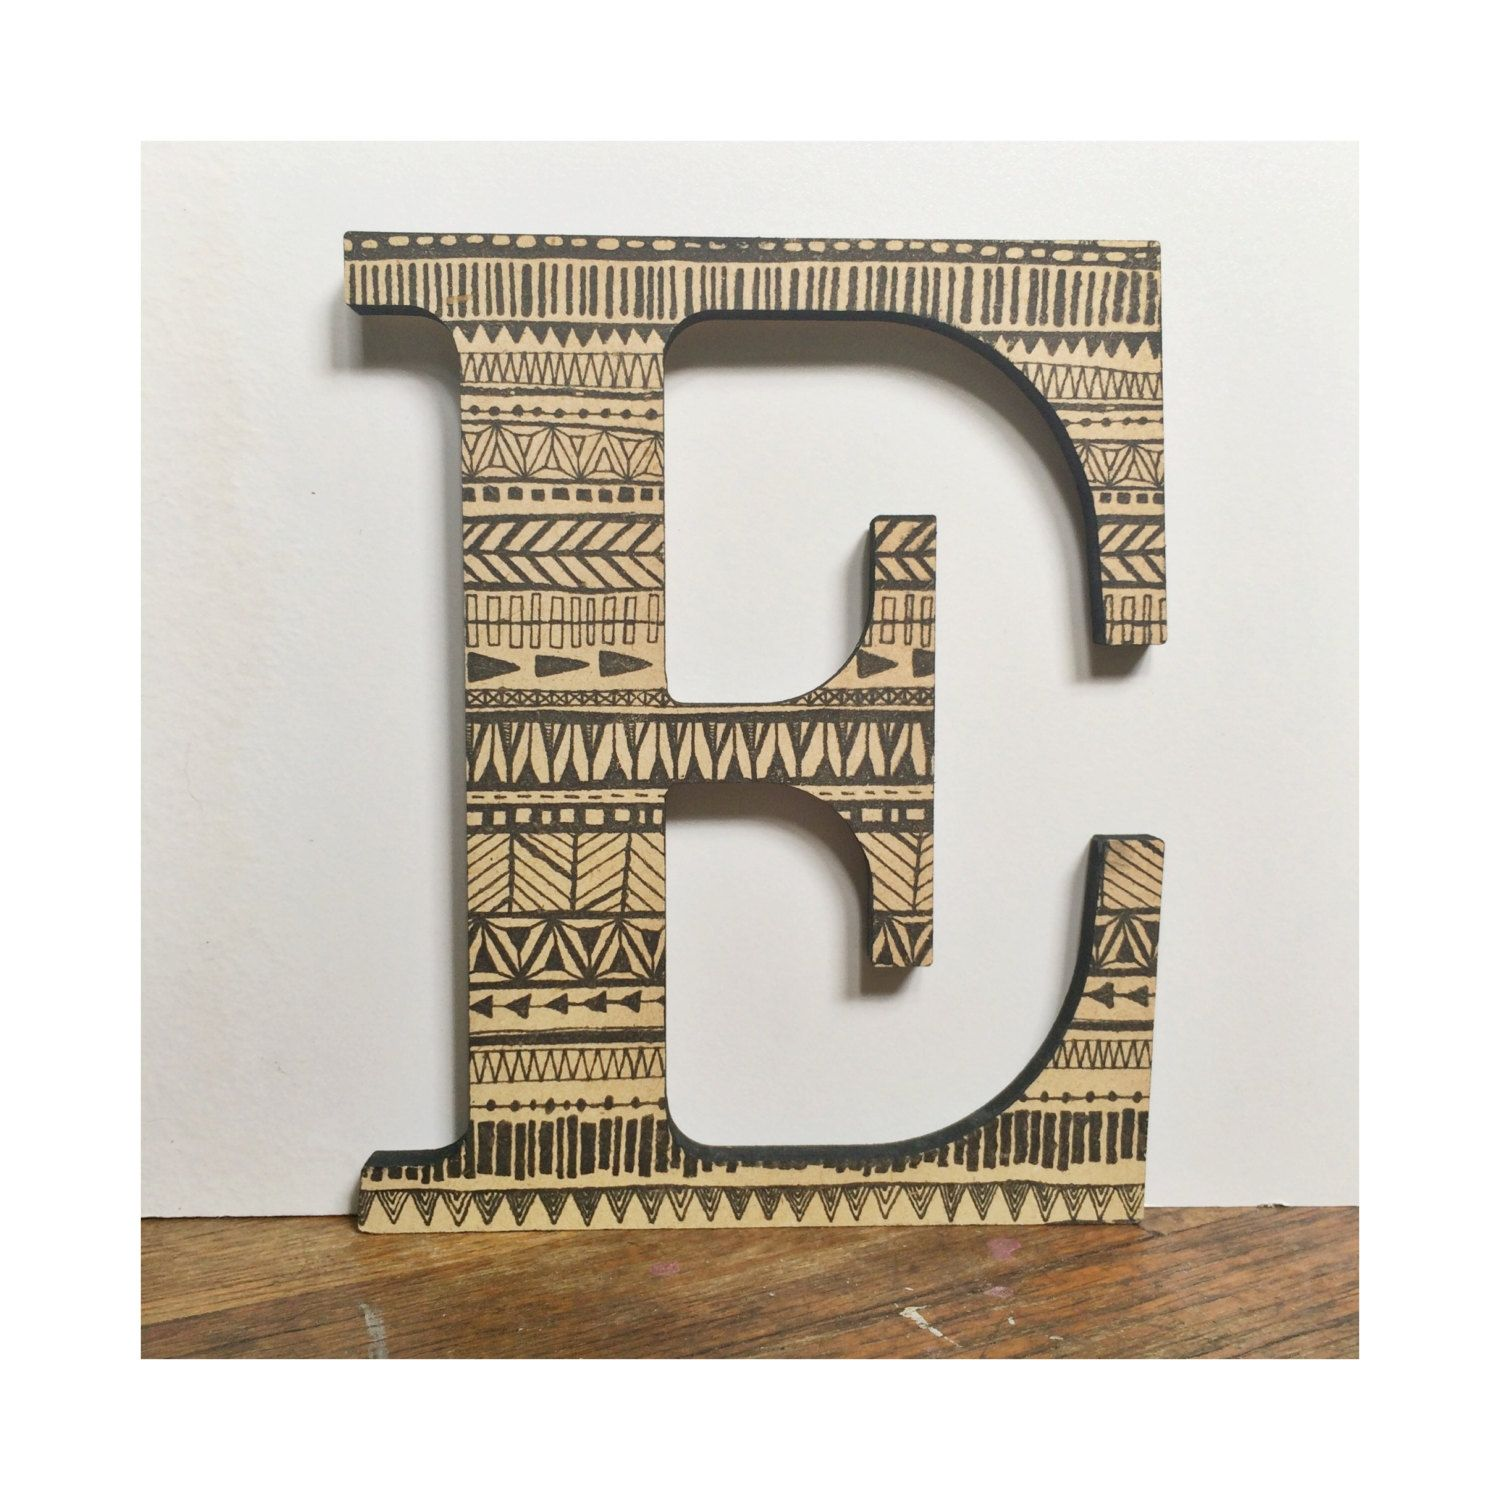 Home Decor Gallery Part - 42: Decorative Wall Letter E Wood Tribal Geometric Pattern Print Home Decor  Gallery Wall Nursery By MissouriHeartsCo